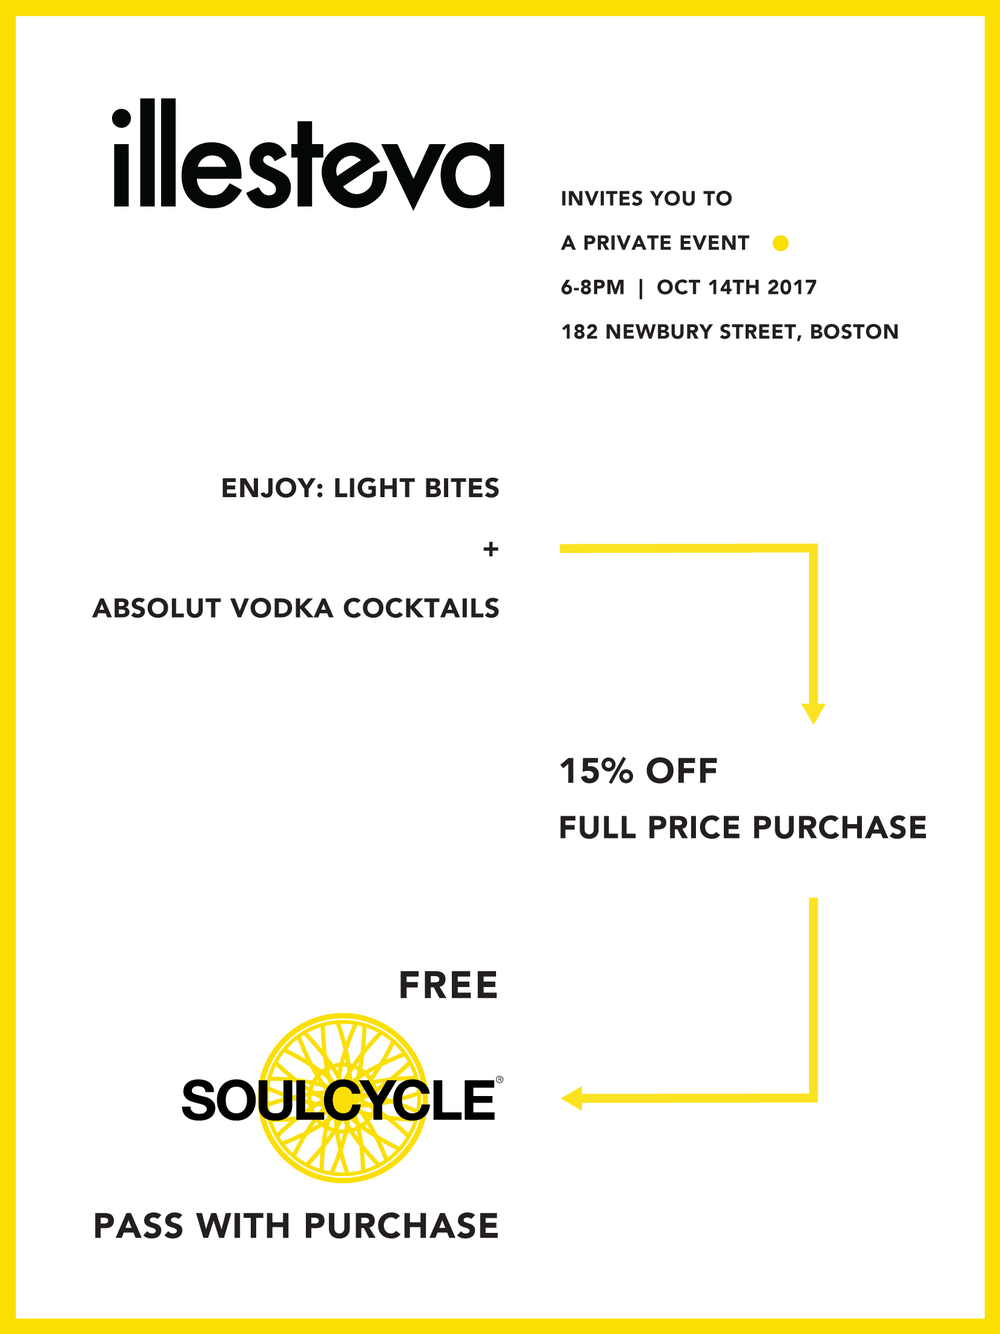 Soulcycle pass - Event sponsored by SoulCycle at Illesteva Newbury